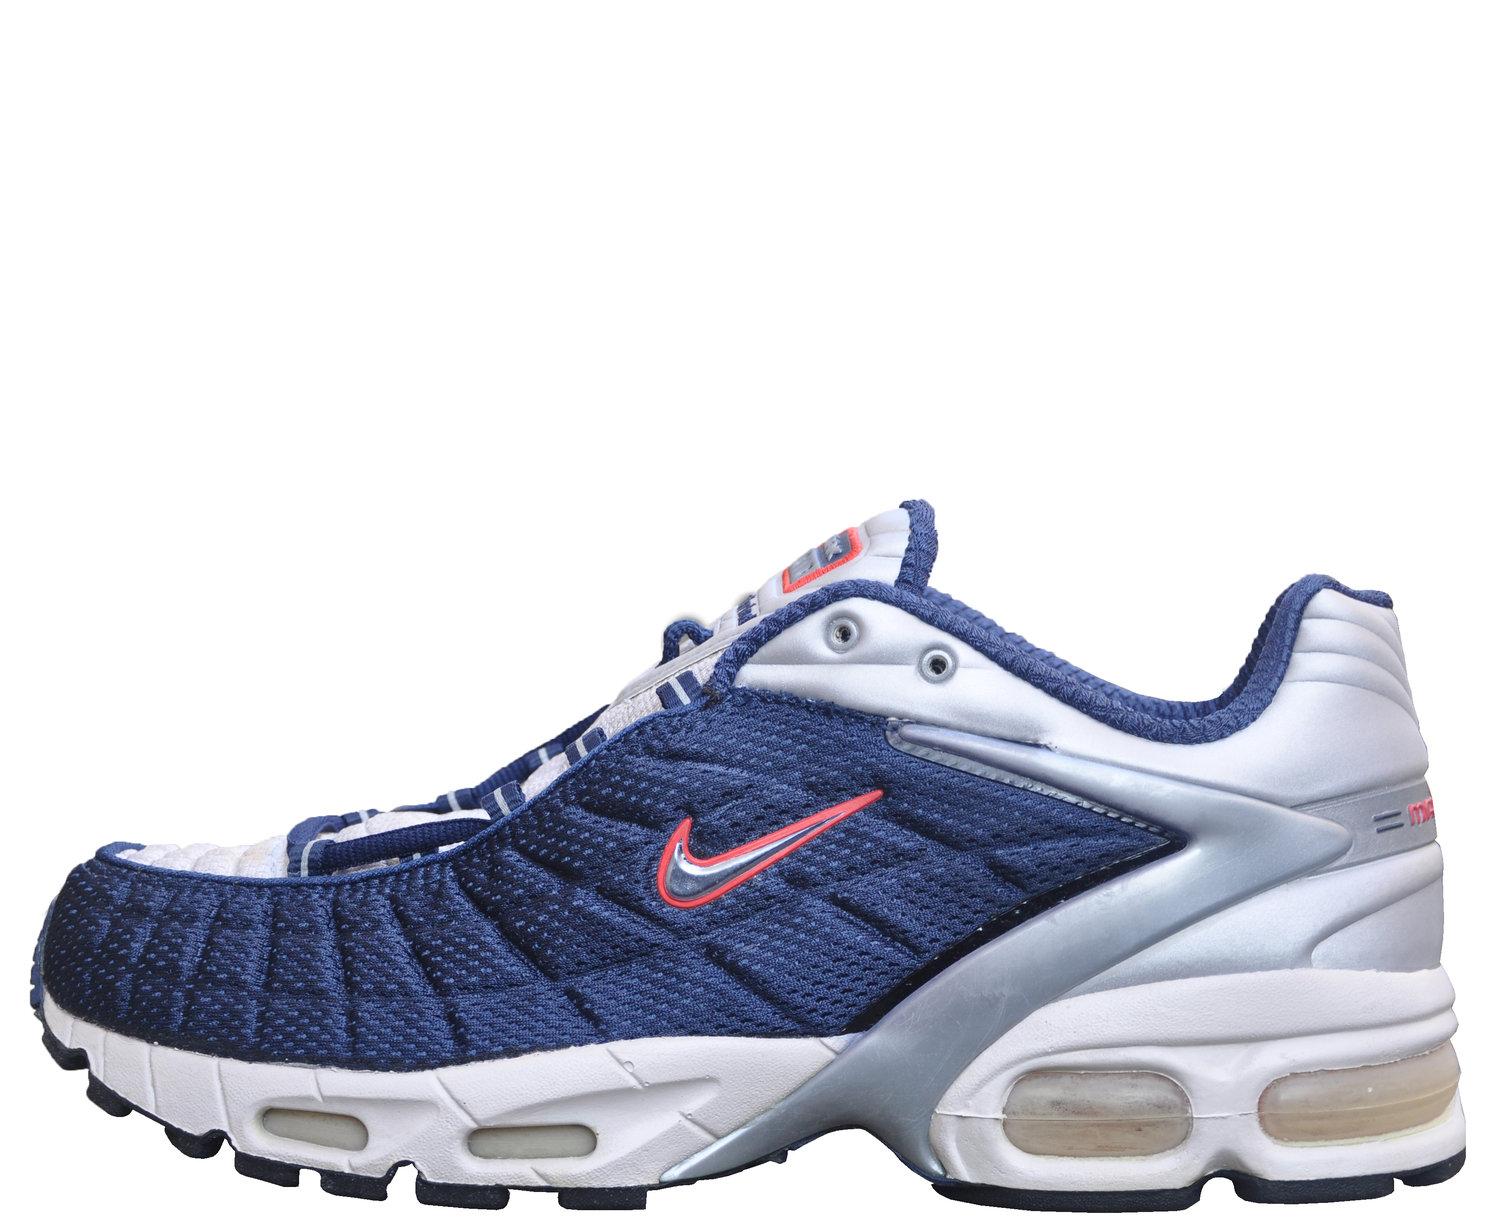 f24f36e324f9eb Nike Air Max Tailwind Navy   Silver   Max Orange (Size 11) DS — Roots